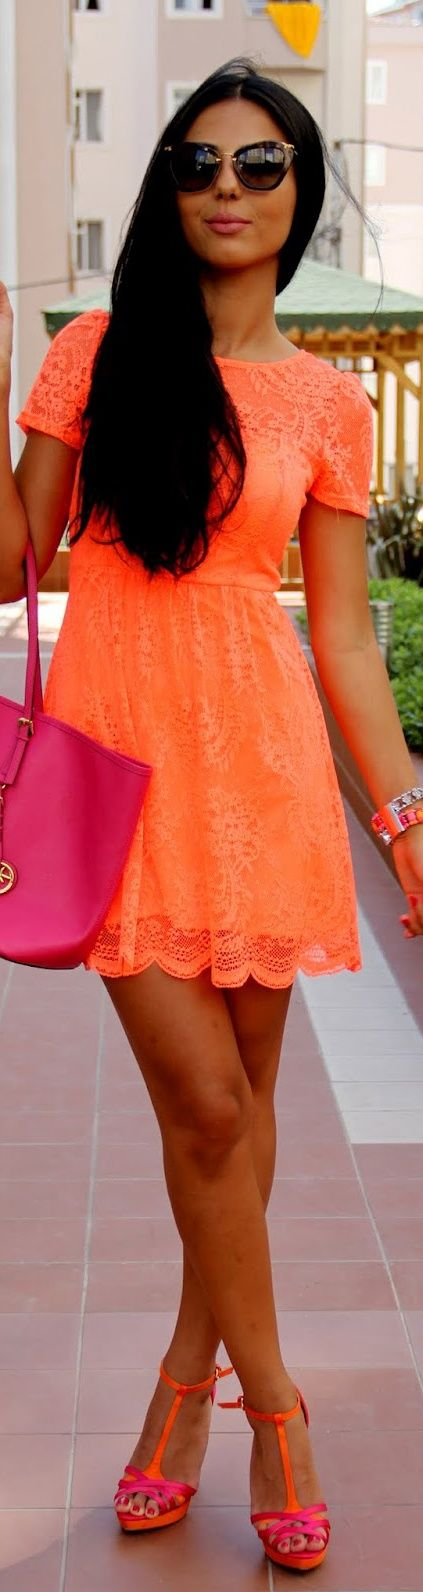 Totally digging both the Color and the lace of this dress!